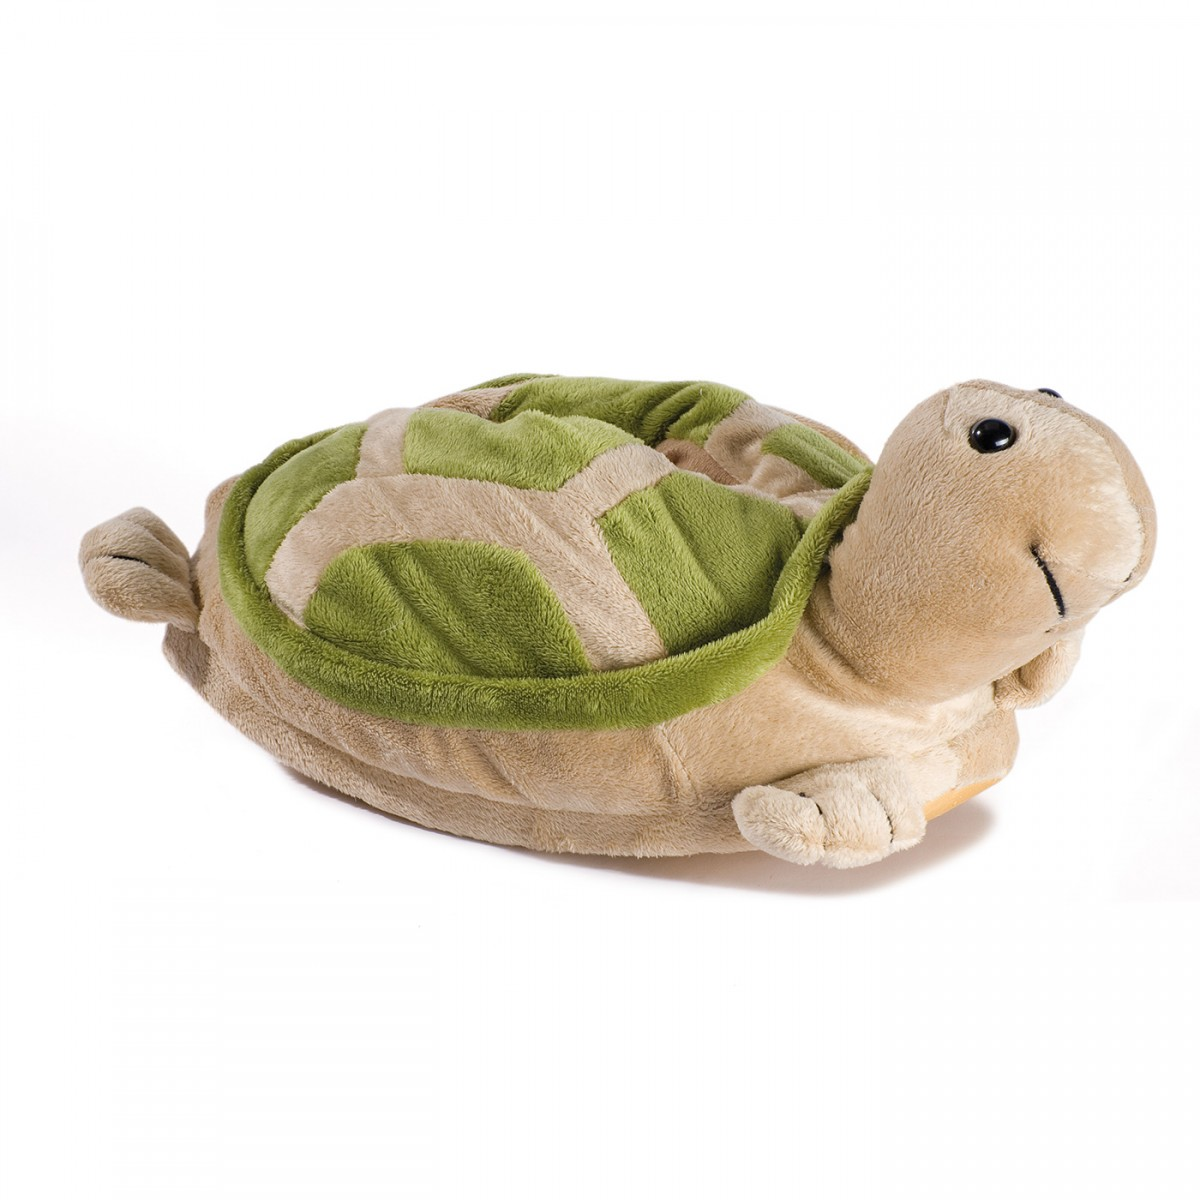 Buy Funny Plush Slippers Turtle, Choose Your Size | Funslippers.com Beige Und Grn